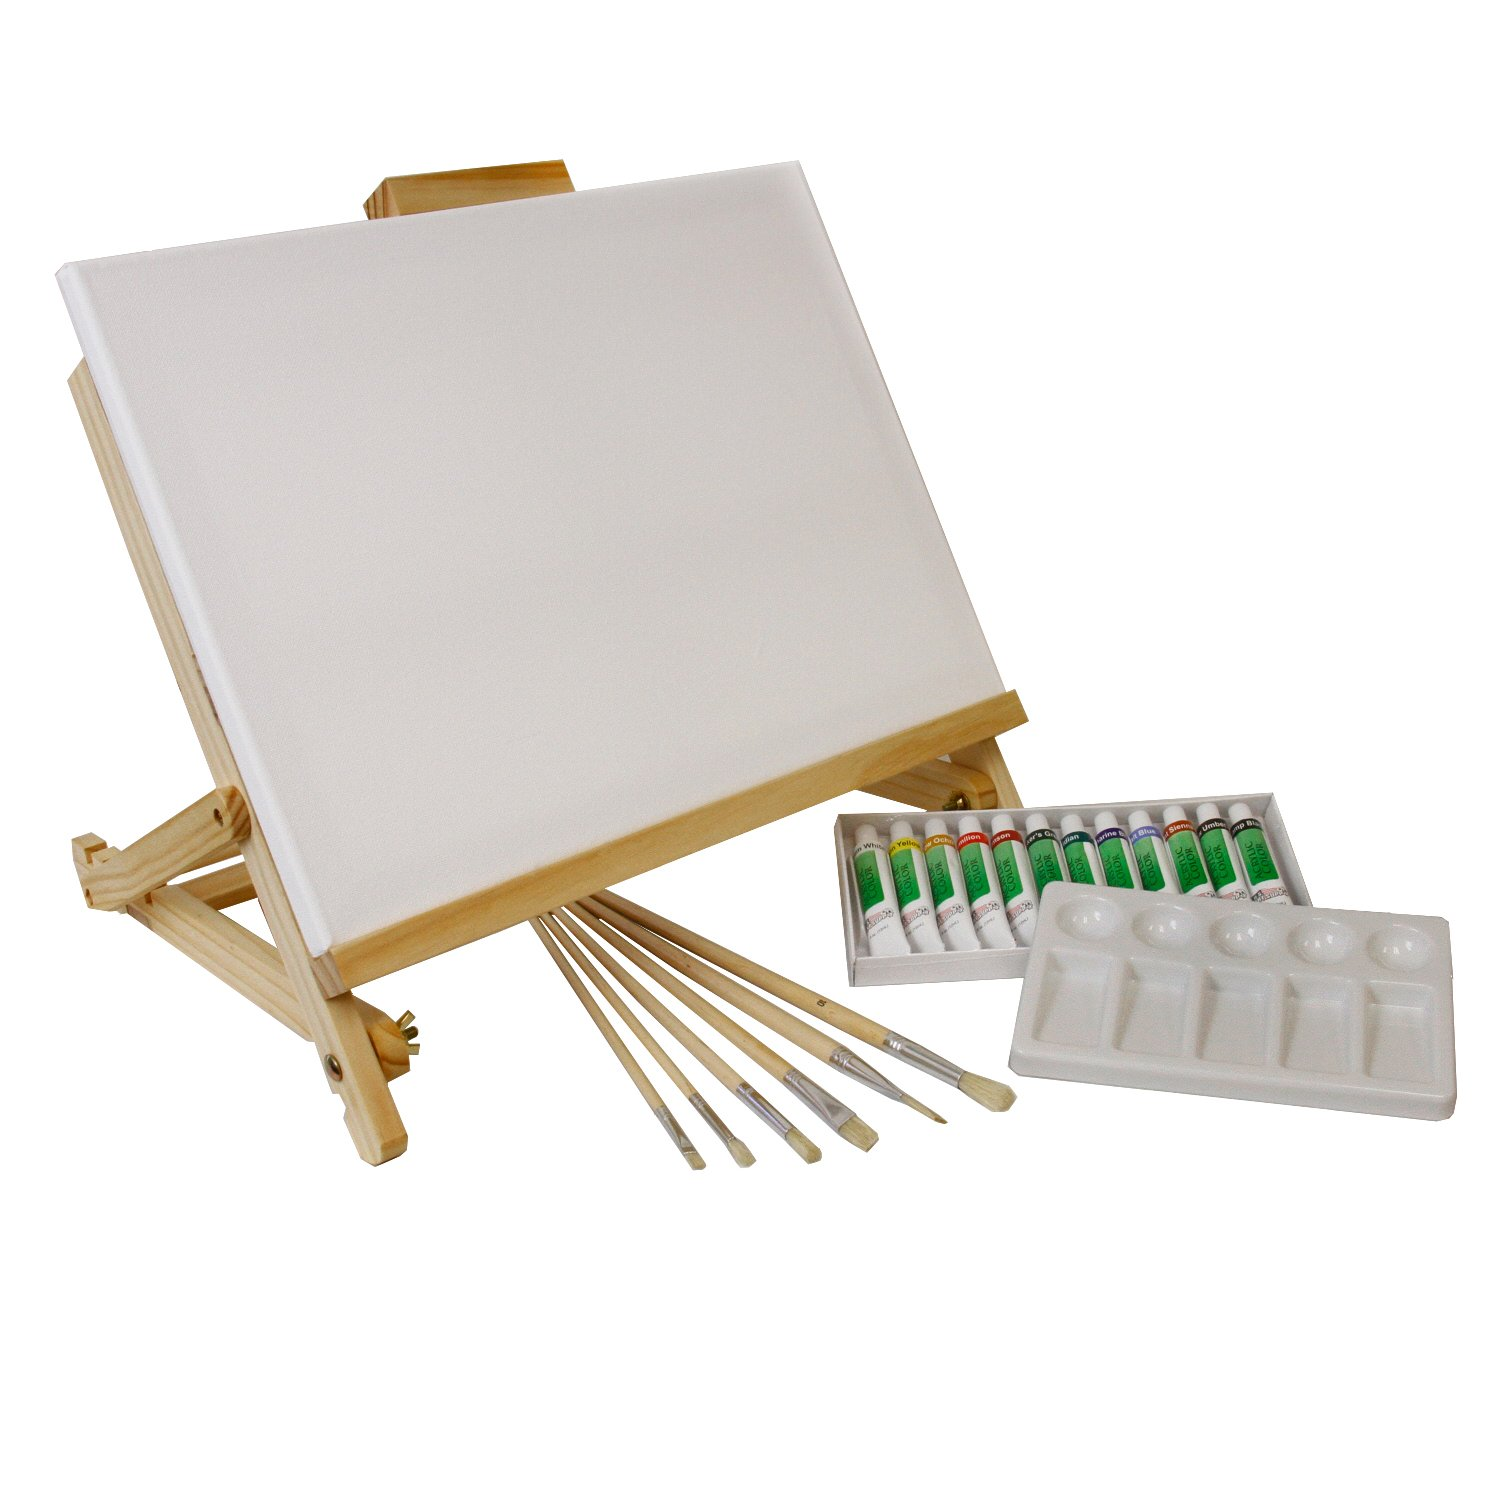 Painting Set with canvas and paint brushes and paint tubes